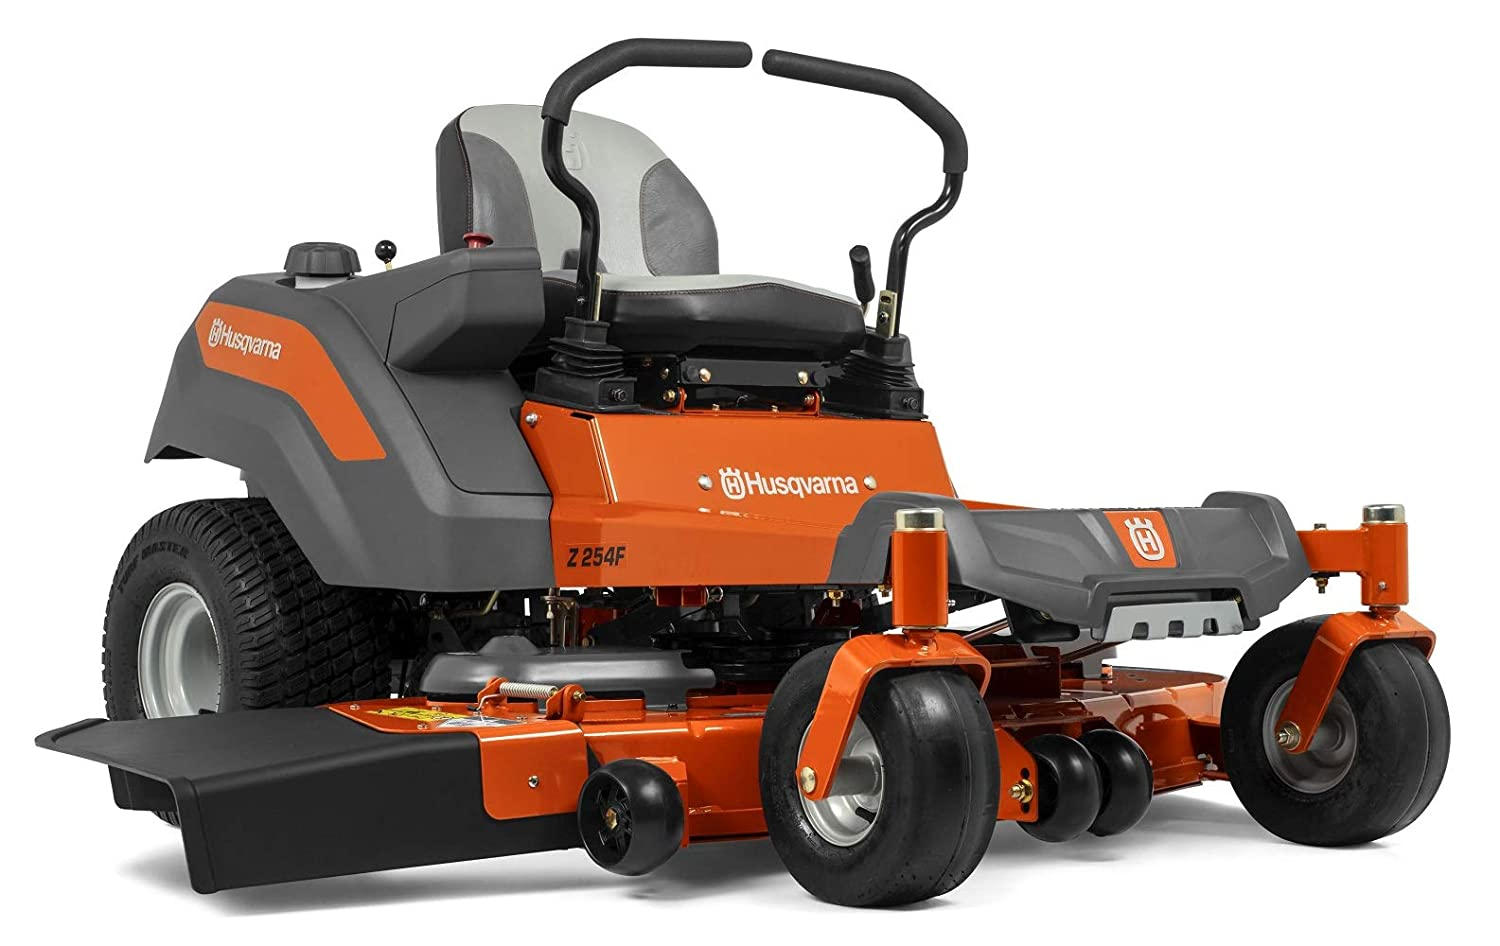 Husqvarna Z254F 54 in  23 HP Kawasaki Zero Hydrostatic Turn Riding Mower